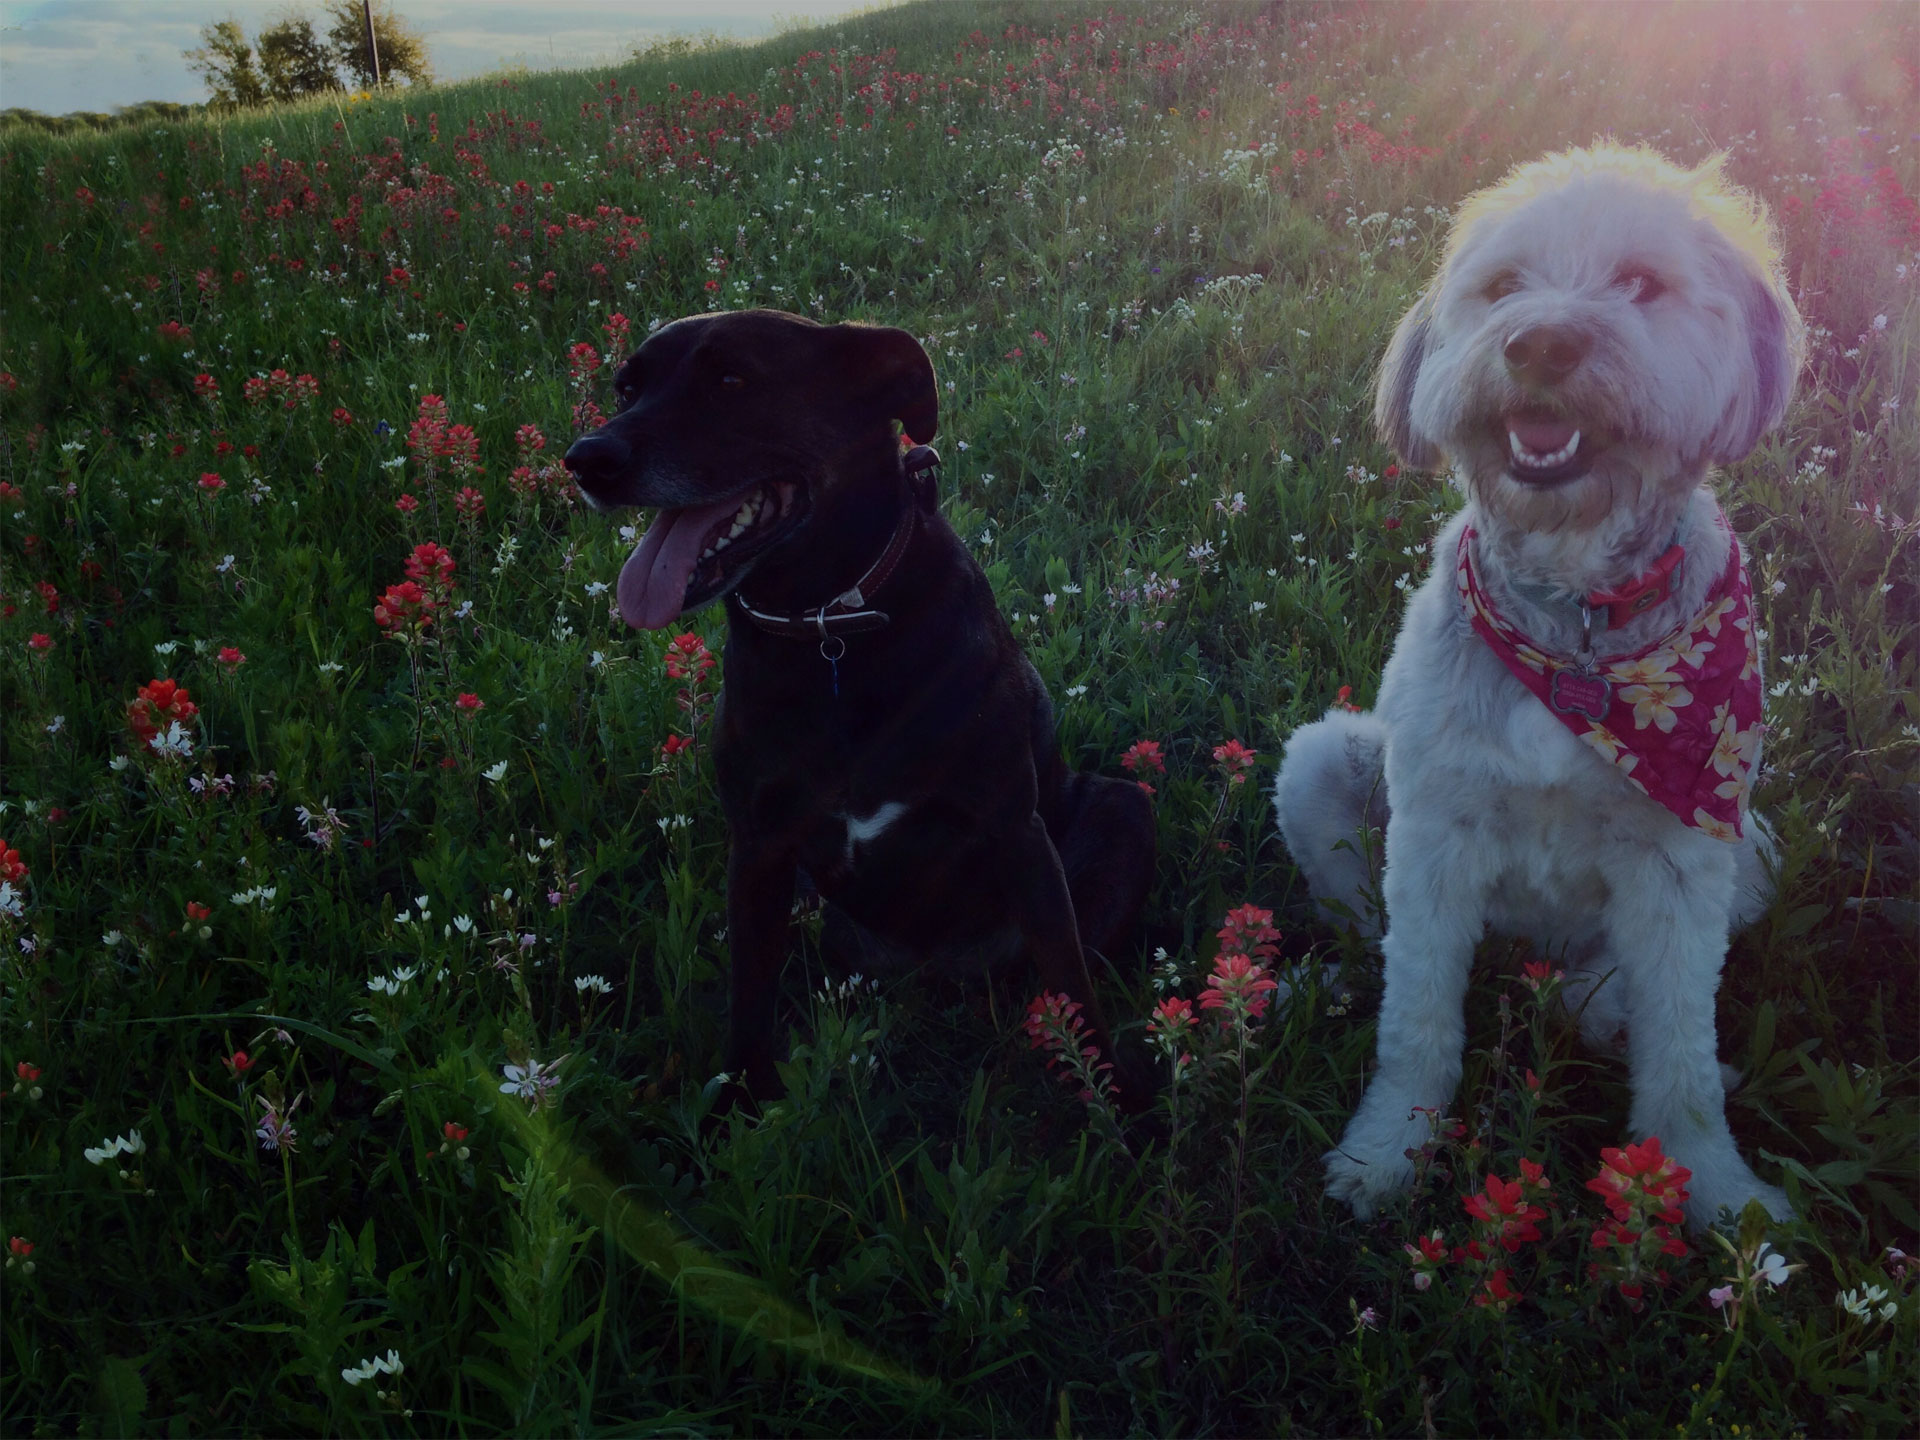 two dogs sitting in the field full of flowers